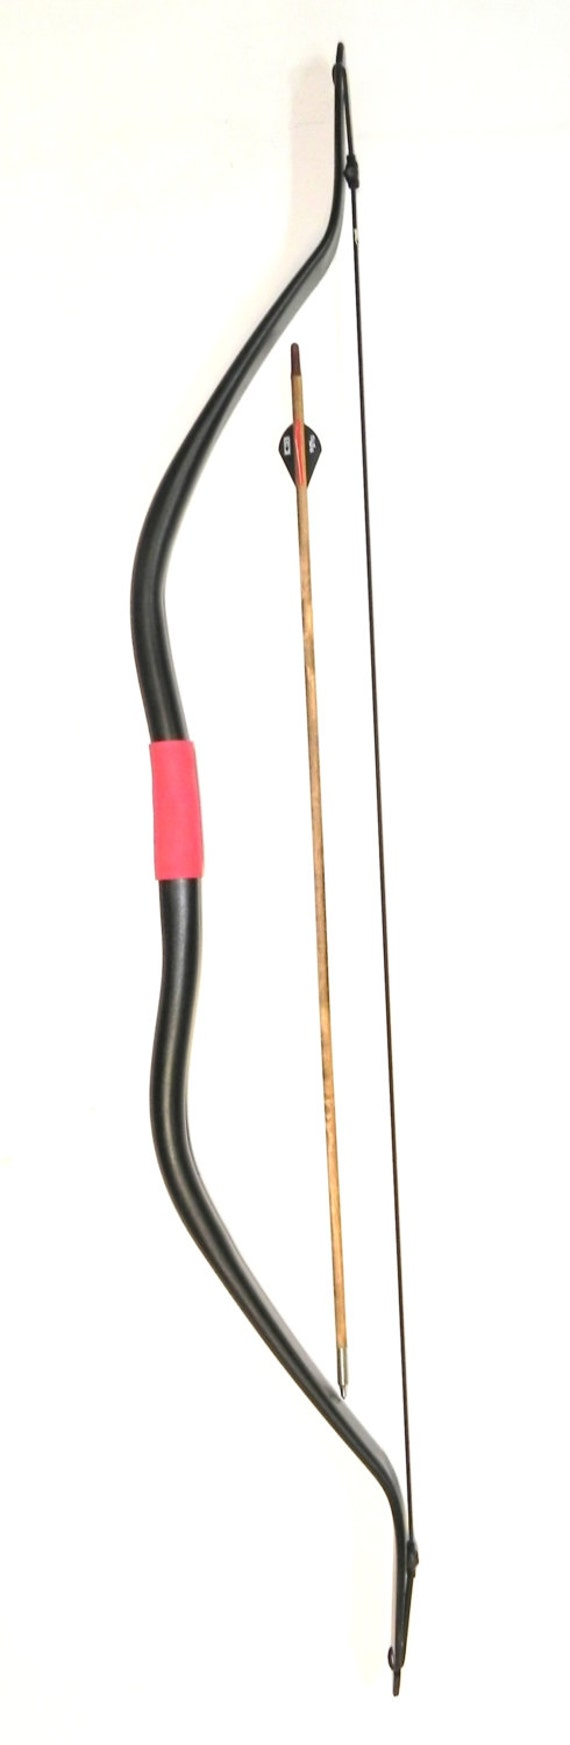 "Archery Re-curve ""Mongolian Black Badger"" 51"" 40-45lb Horse Bow"